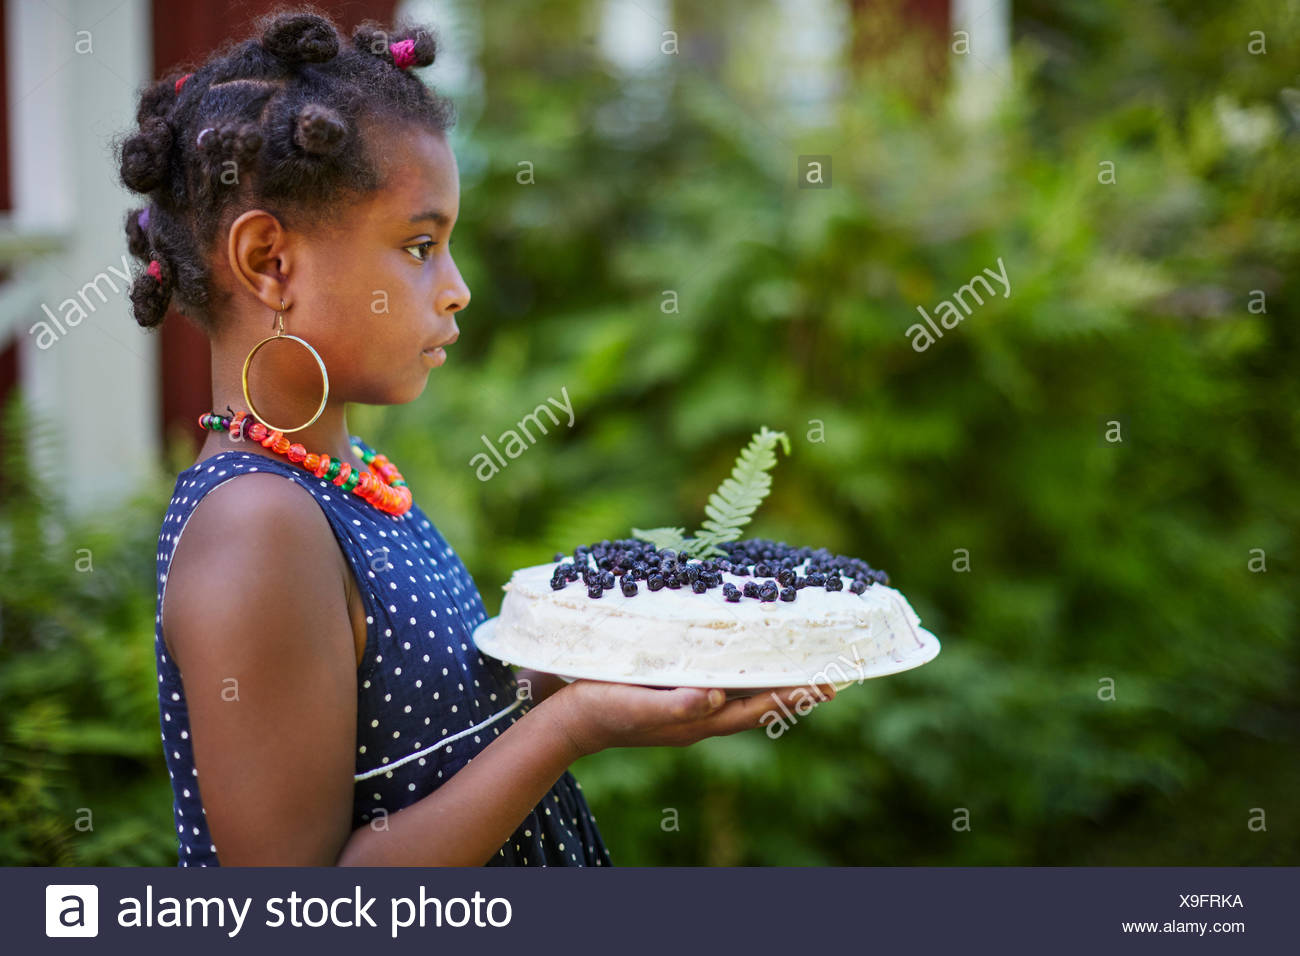 Girl holding cake with blueberries Stock Photo